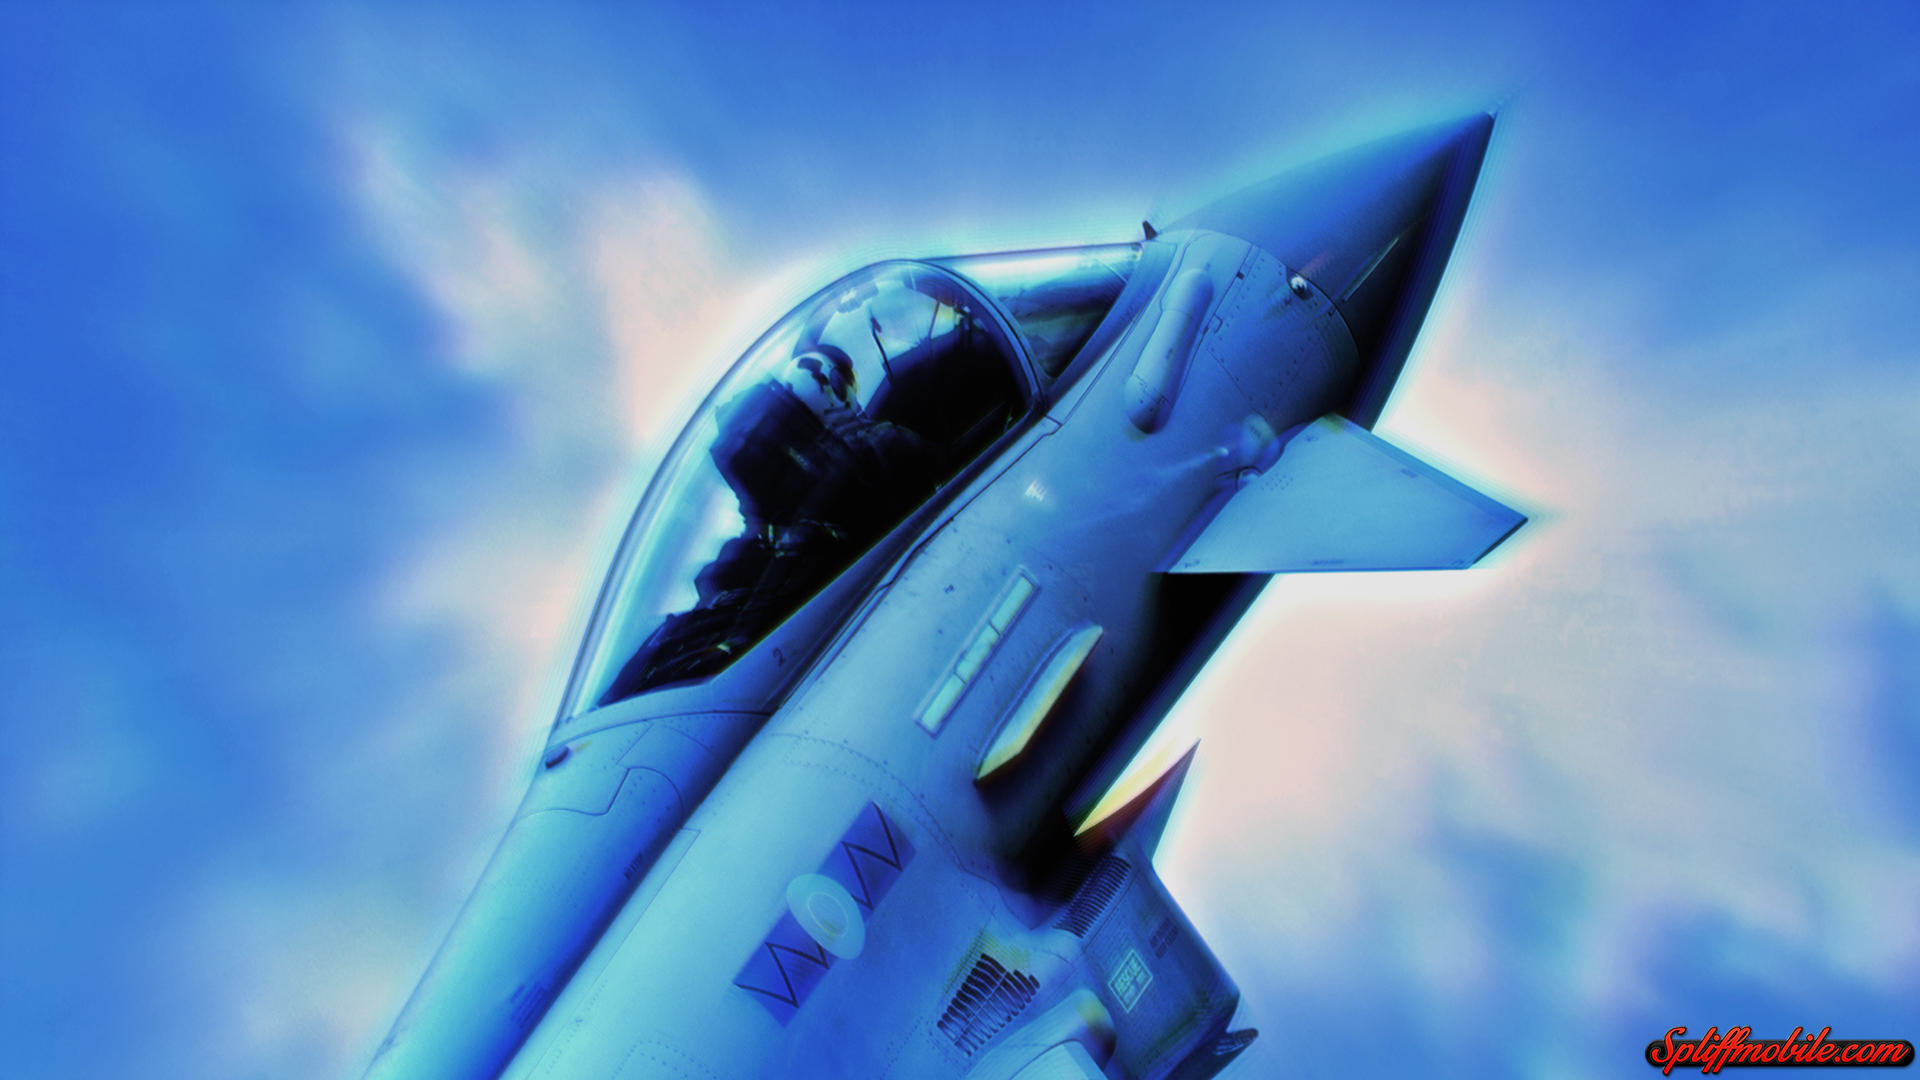 HD Blue Fighter Jet Wallpaper